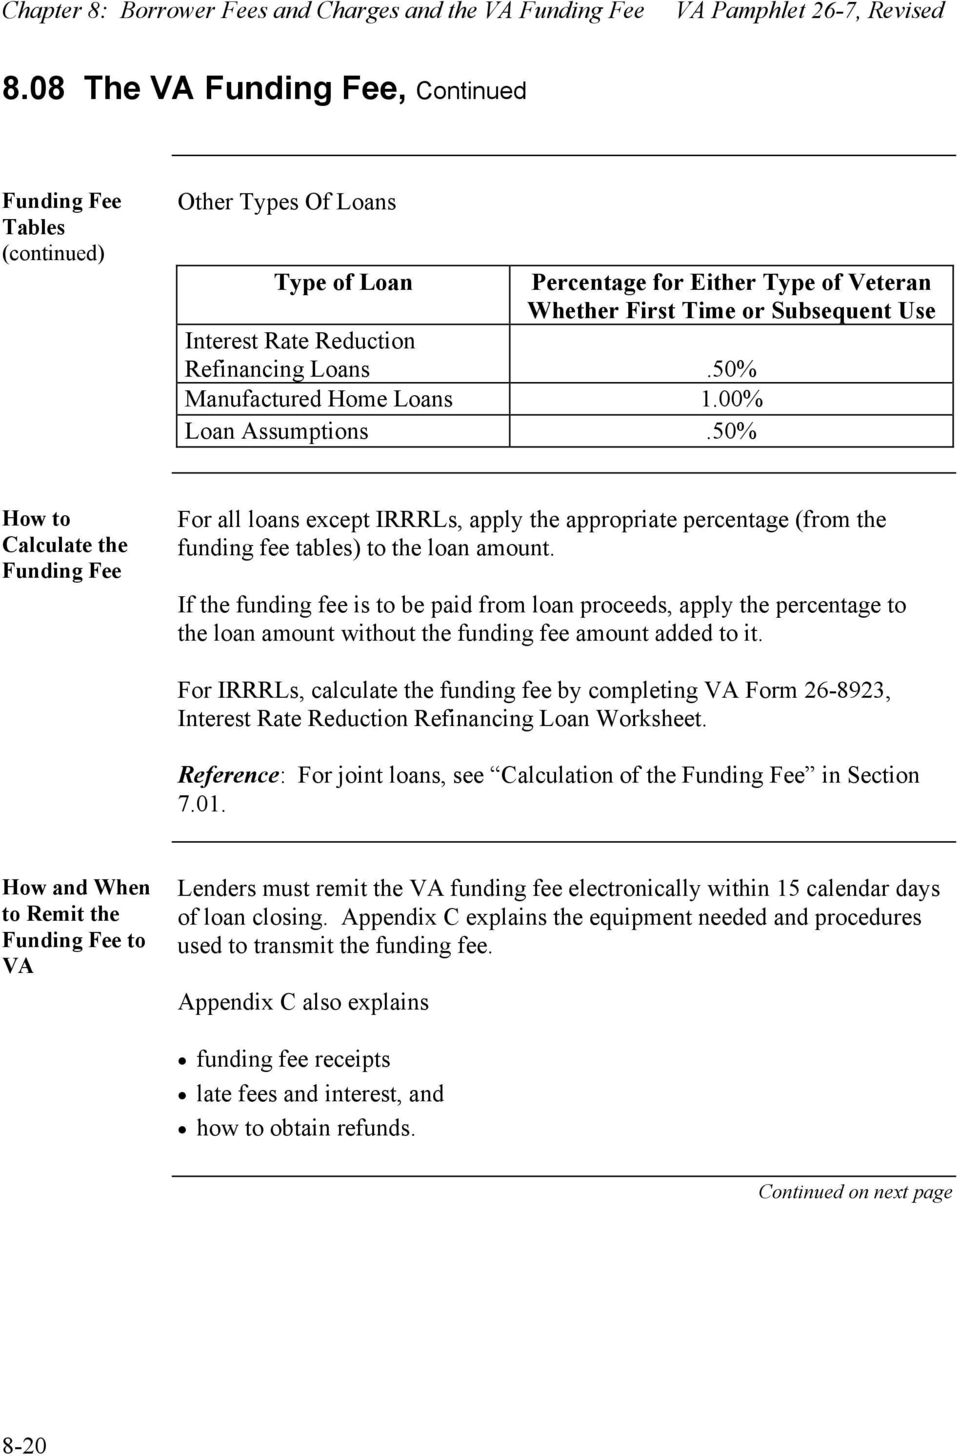 Borrower Fees And Charges And The Va Funding Fee Pdf